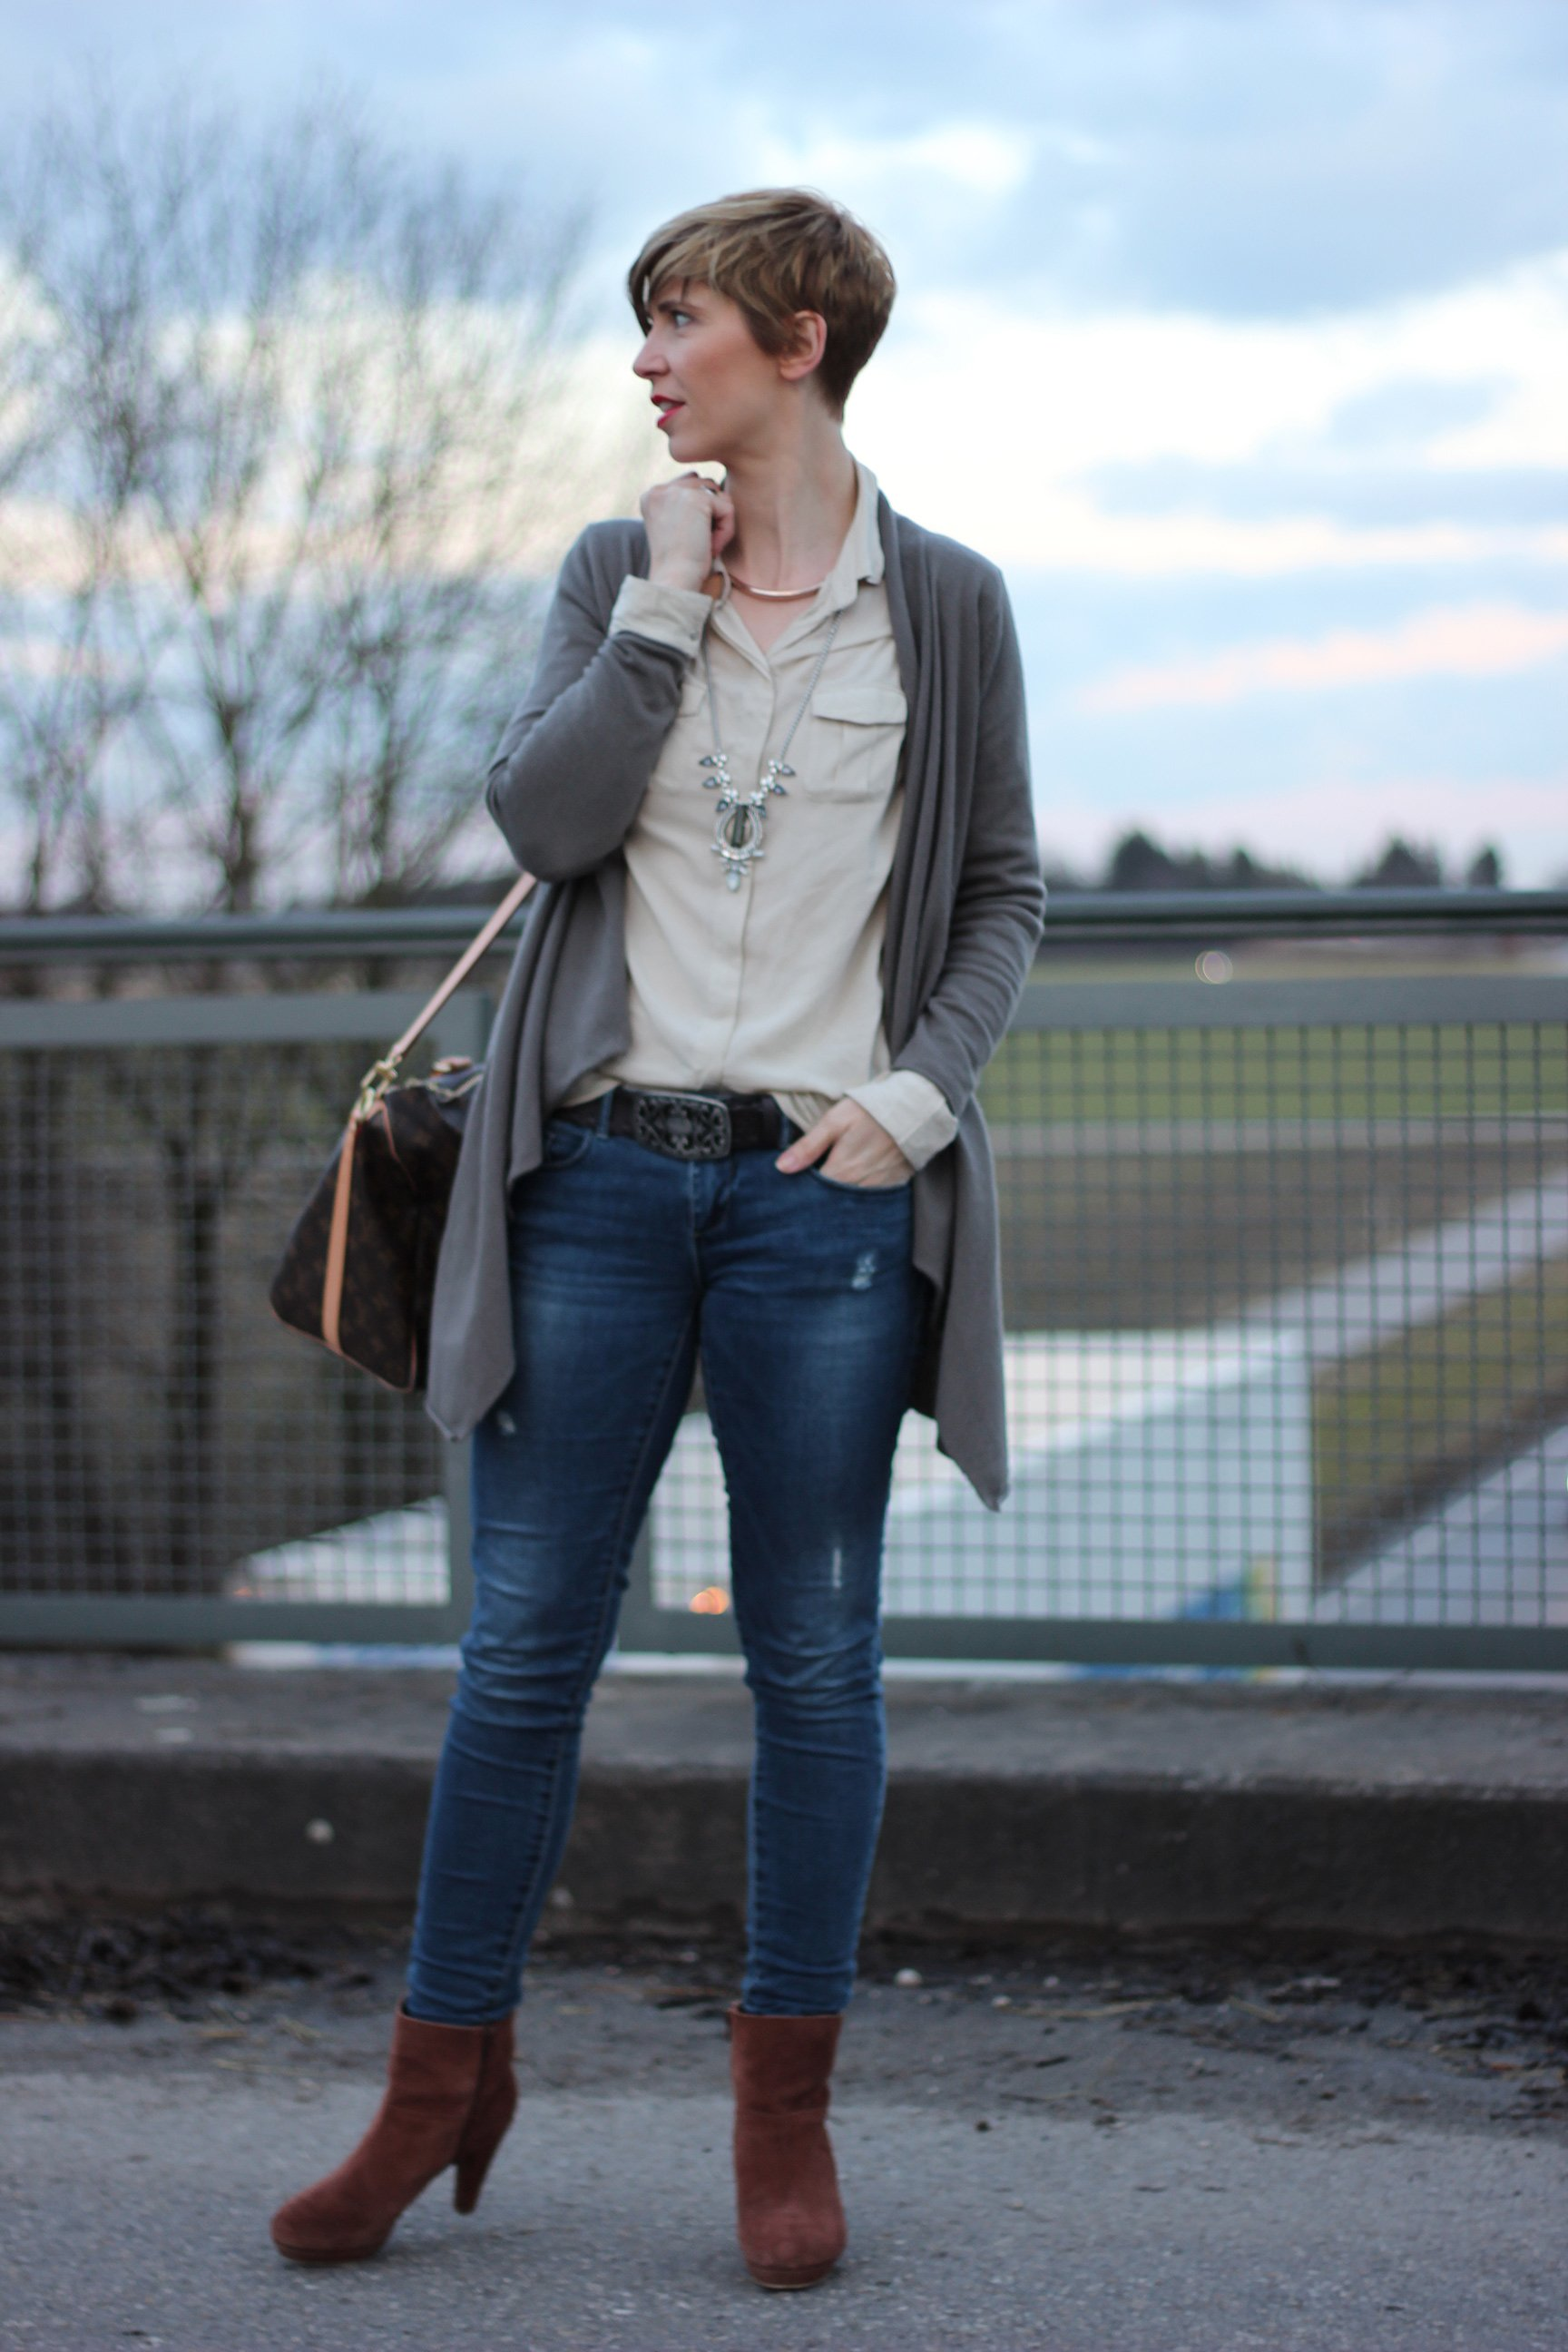 IMG_0910a_Cardigan_Boden_Only_Jeans_MarcoPolo_Bluse_StellaandDot_Kette_Office_buero